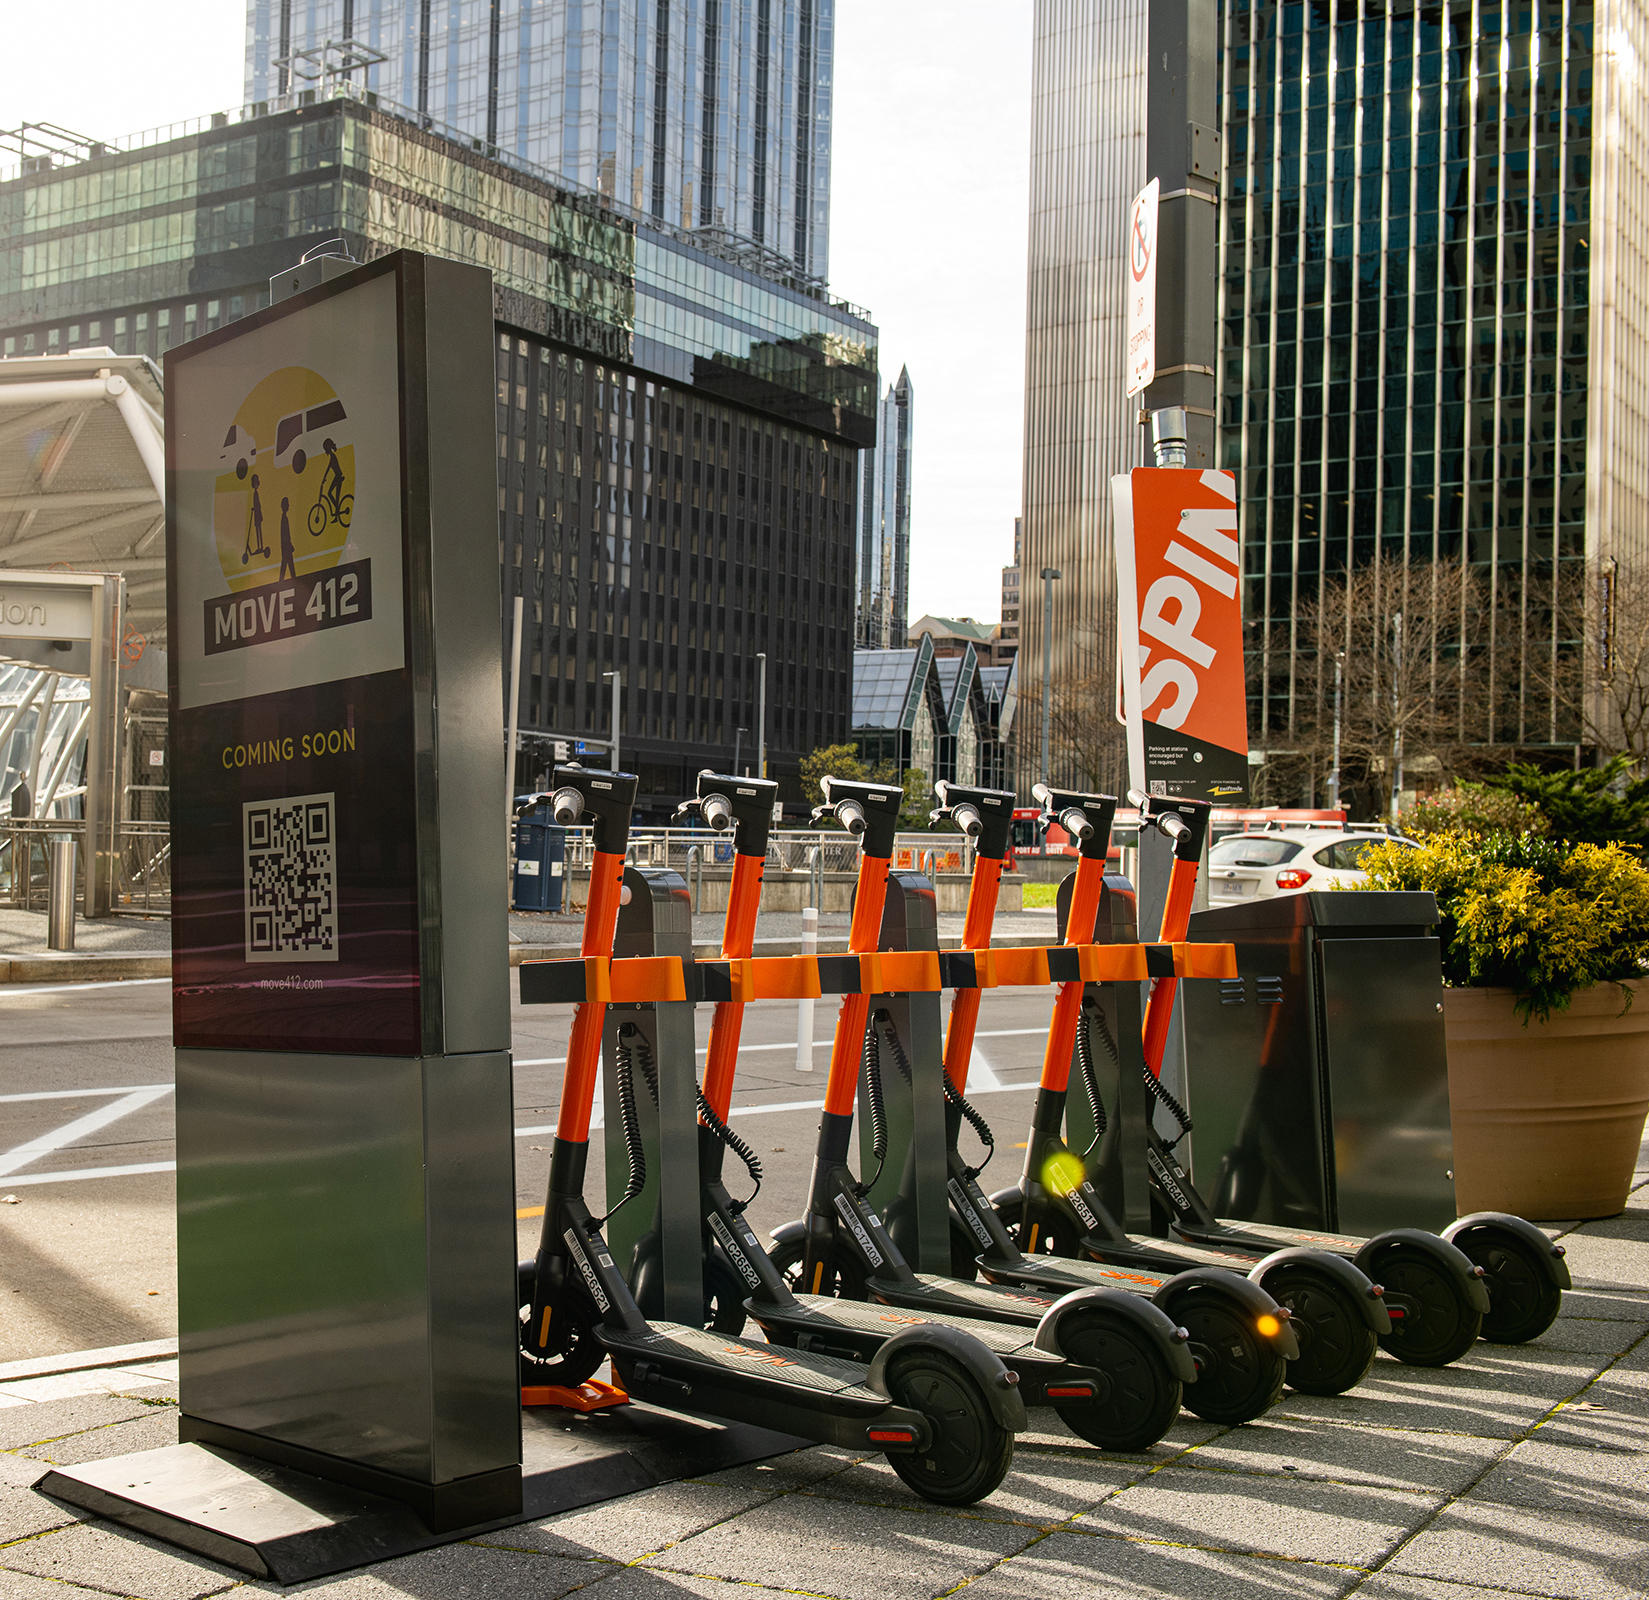 Moovit will show its users in real-time where a Spin e-scooter is available nearby, including how long it will take to walk there, as well as battery range.